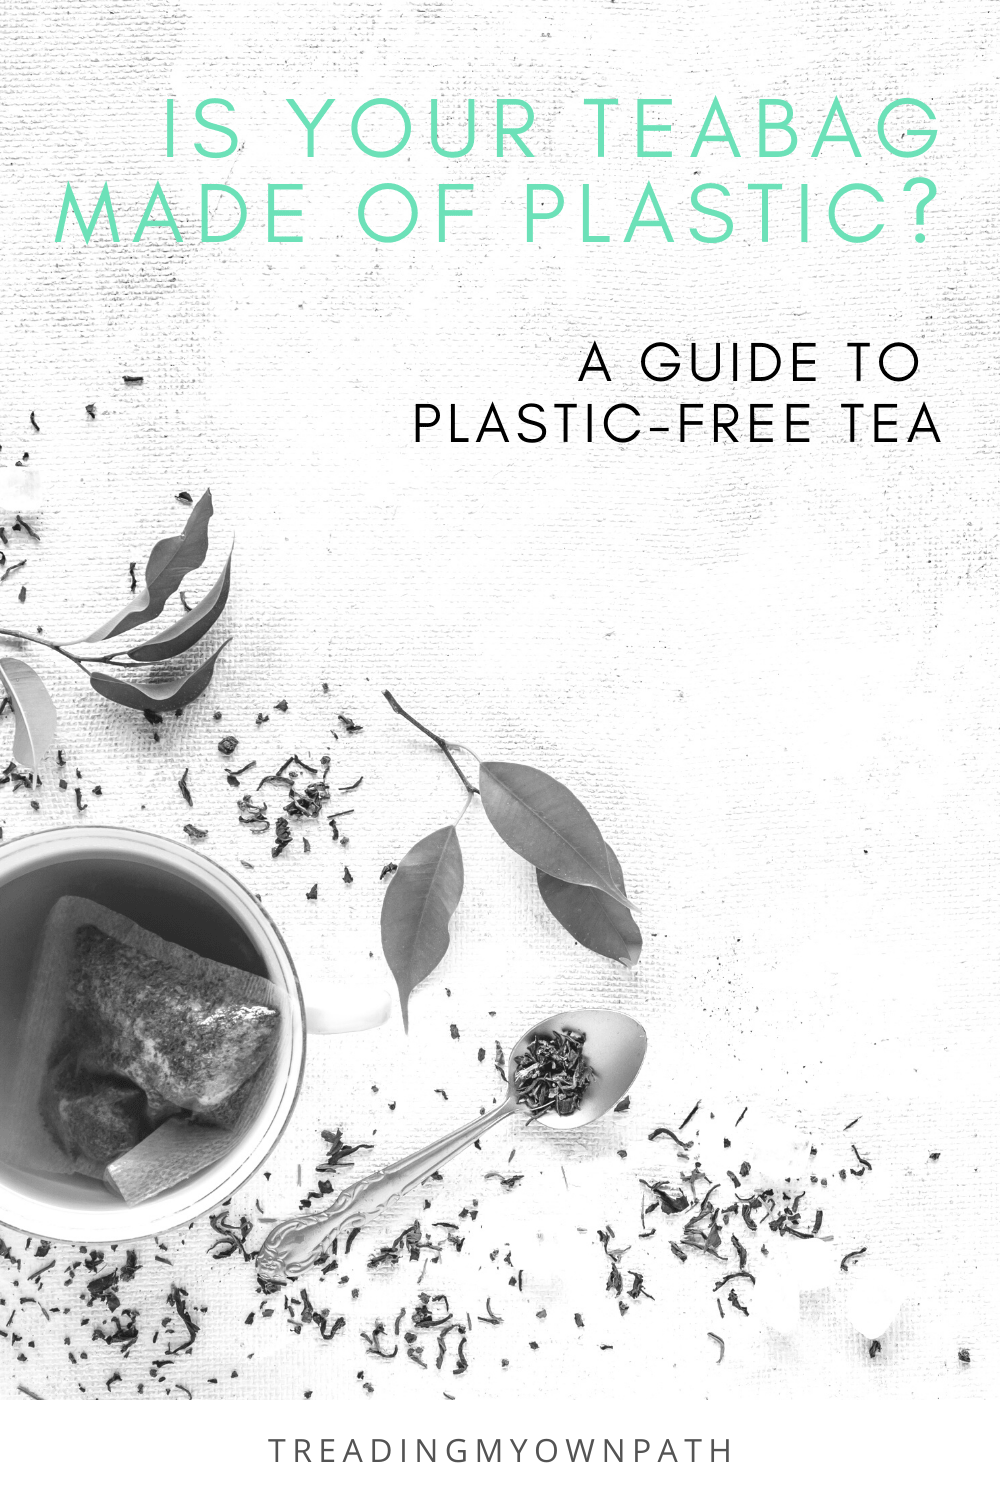 Is there plastic in your teabag?